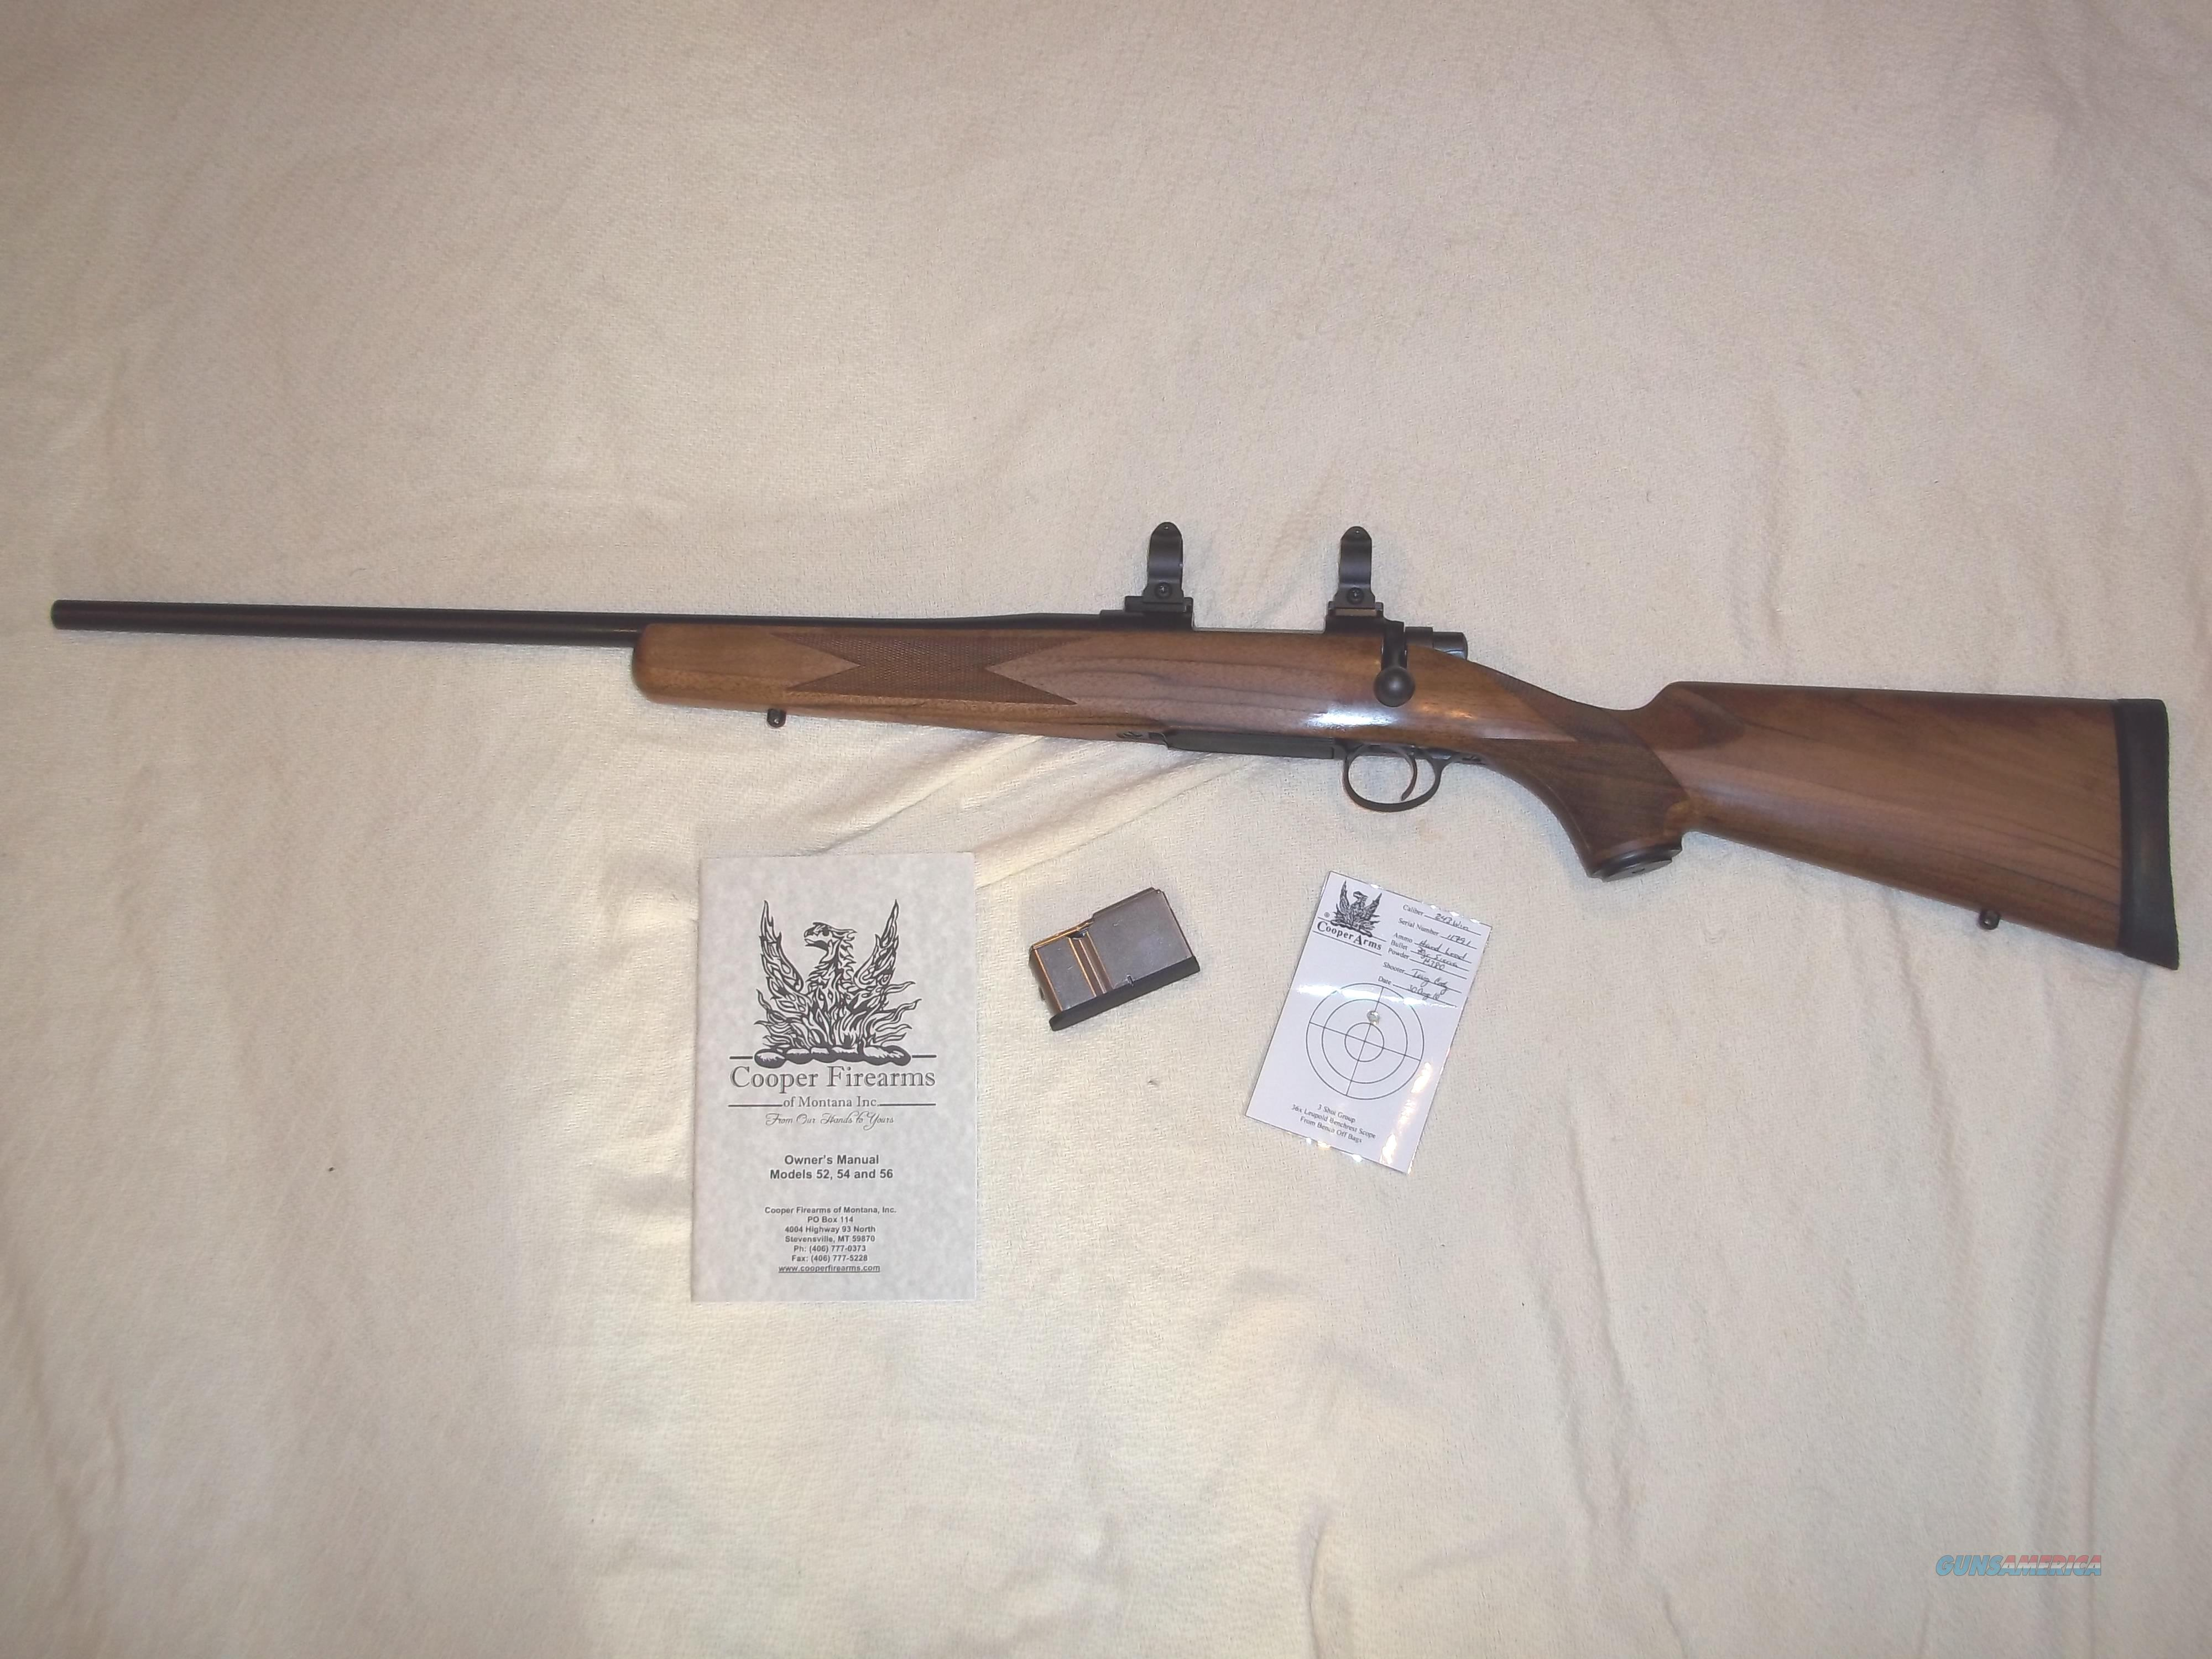 cooper 54 classic left hand 243 win with upgr for sale rh gunsamerica com Cooper Firearms Company Cooper Firearms Styles